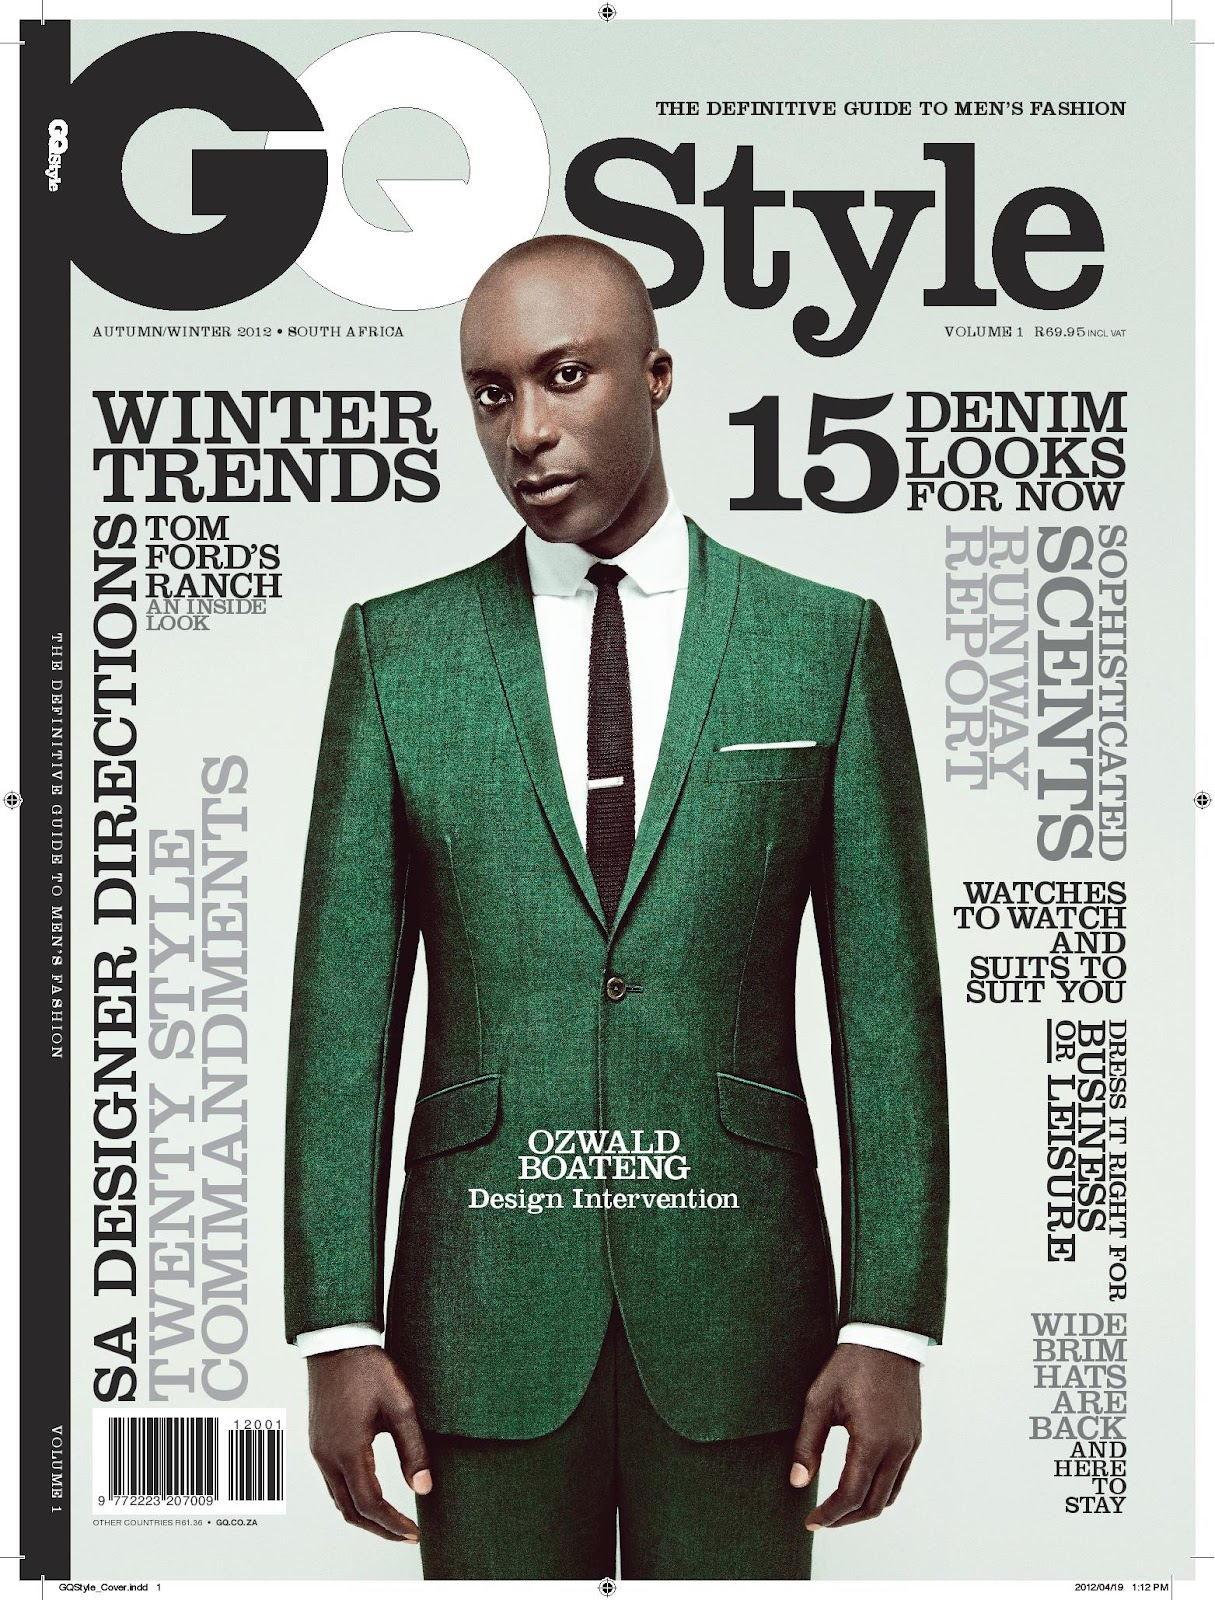 The latest Tweets from Dress4Success (@_GQ_Style):